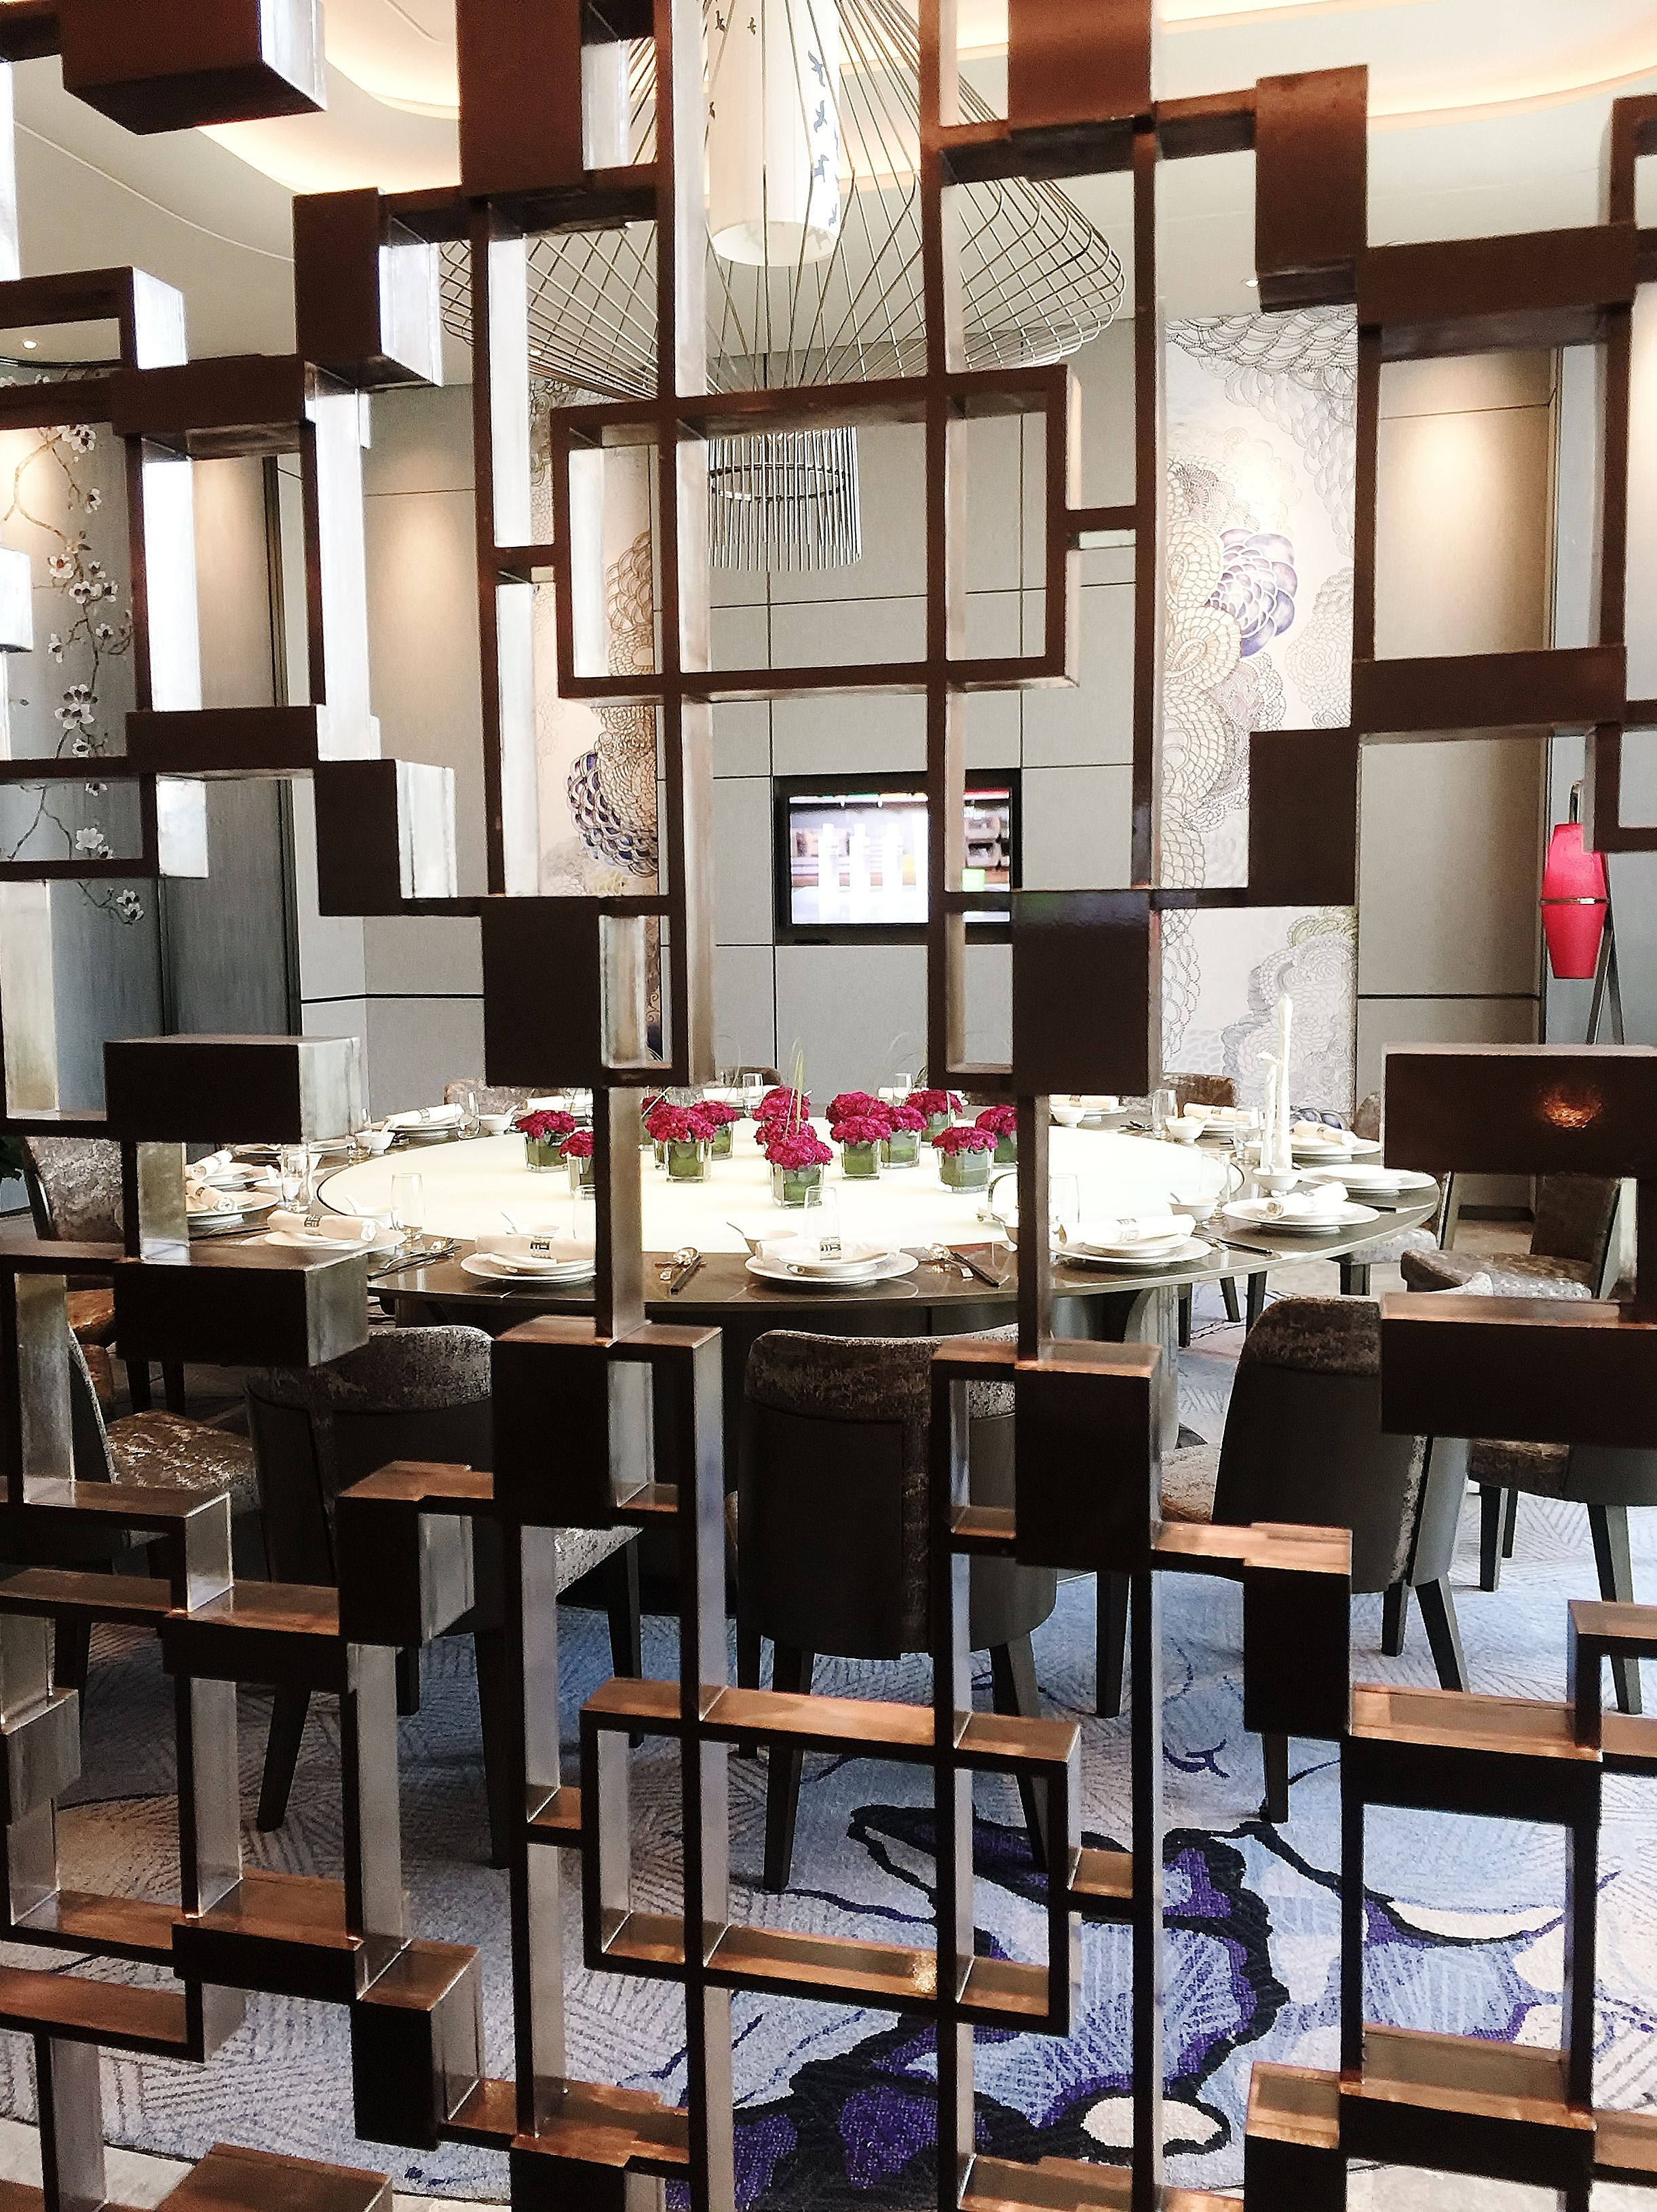 Chinese Restaurant Vip Private Dining Room